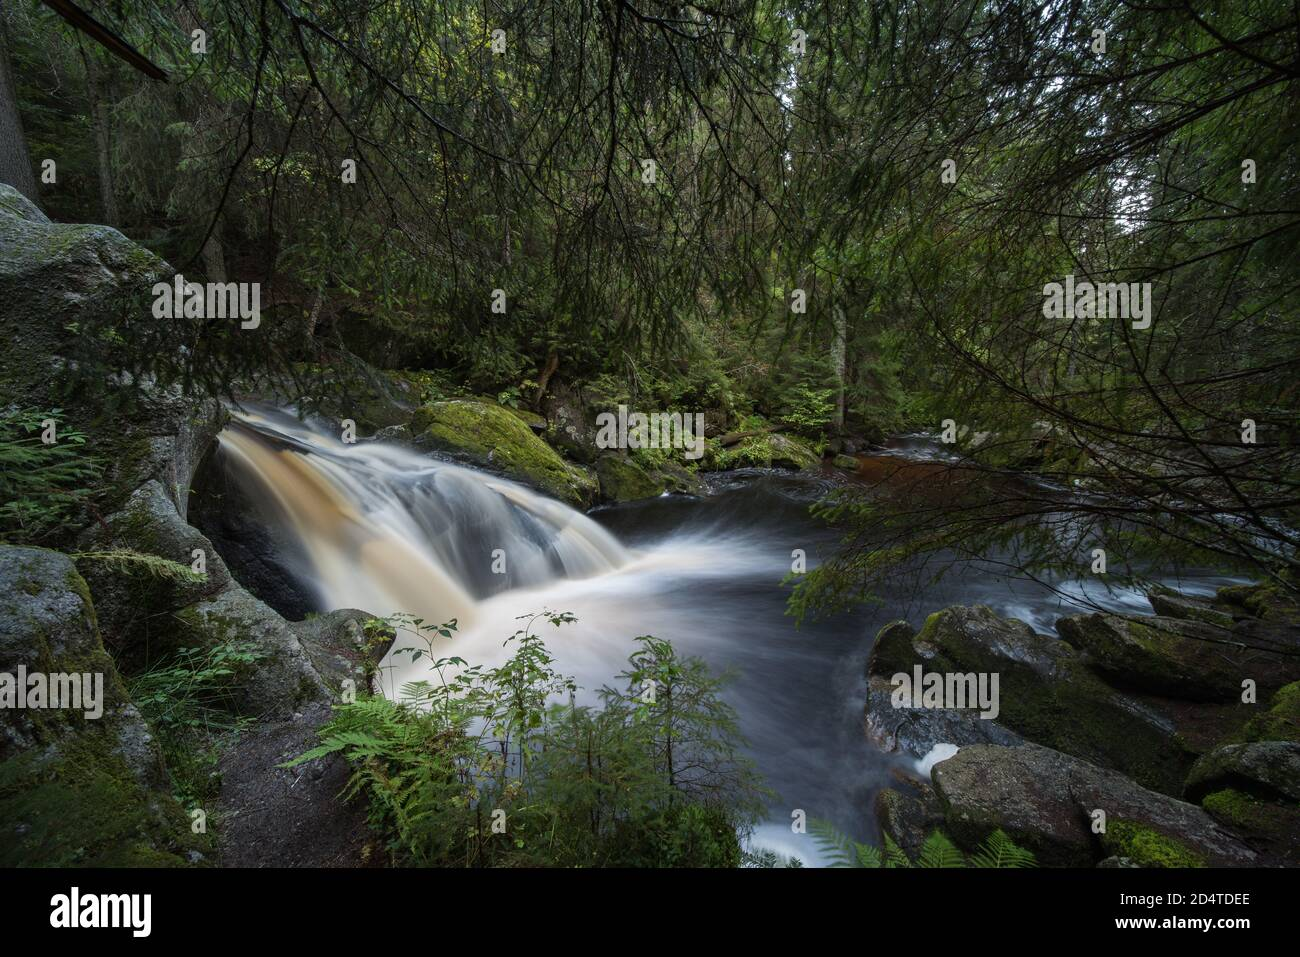 beautiful waterfall in the black forest germany, the name is Krai Woog Gumpen near herrischried. Stock Photo